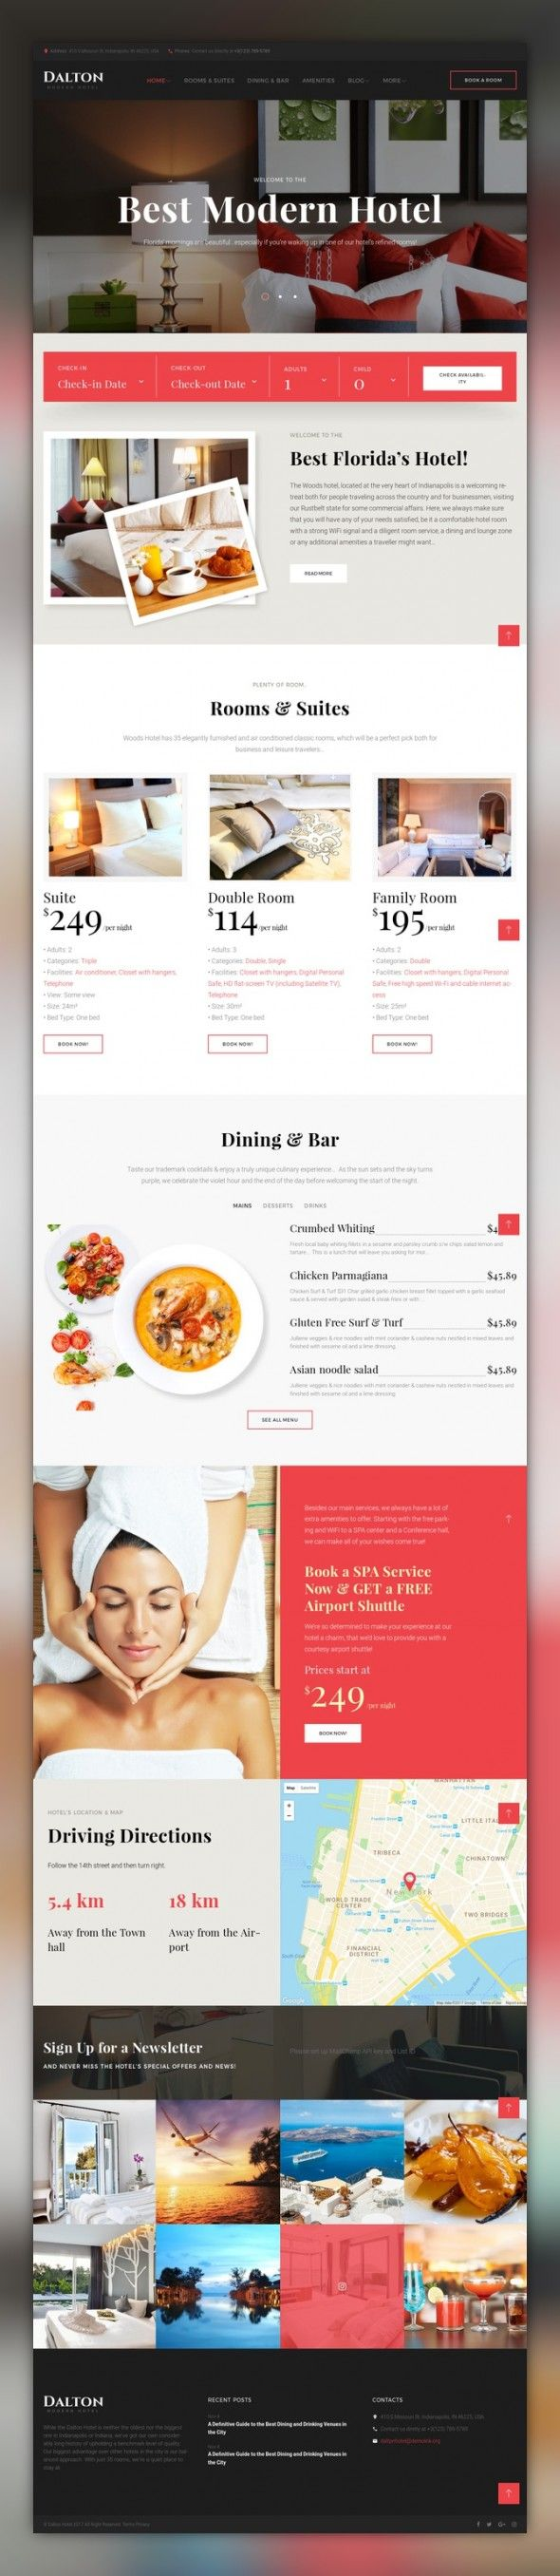 Dalton - Modern Hotel & Resort WordPress Theme CMS & Blog Templates, WordPress Themes, Business & Services, Hotels Templates Dalton is a modern hotel WordPress theme, which is preferred by large and small businesses alike. A hotel room booking functionality makes it perfect for your visitors to reserve rooms onlin...